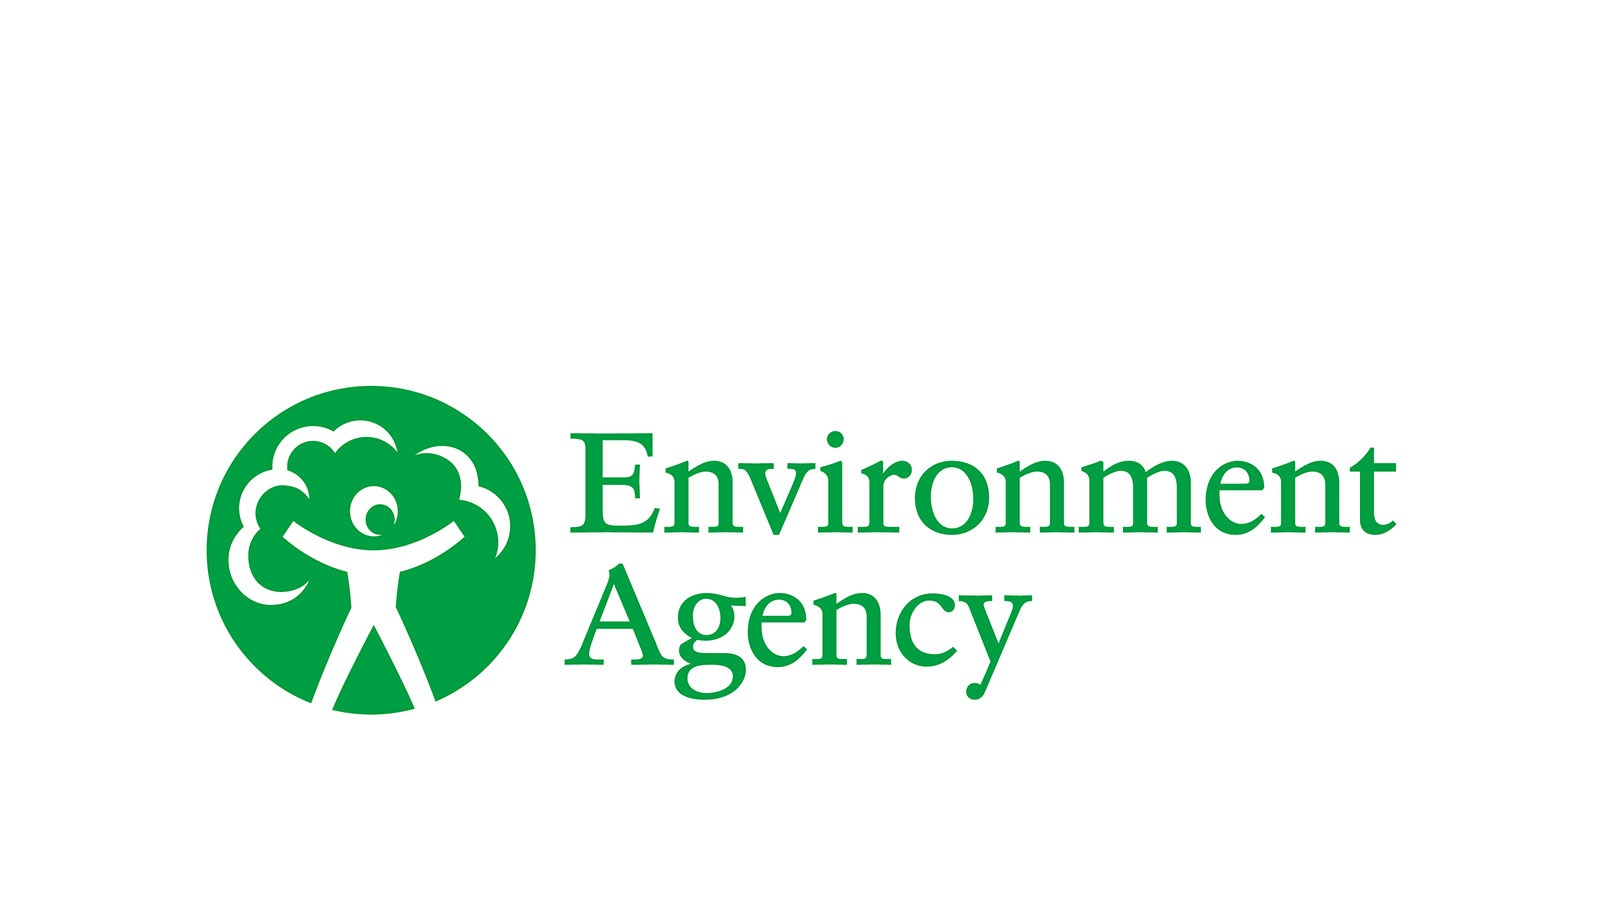 Environment Agency signs up with Asite.